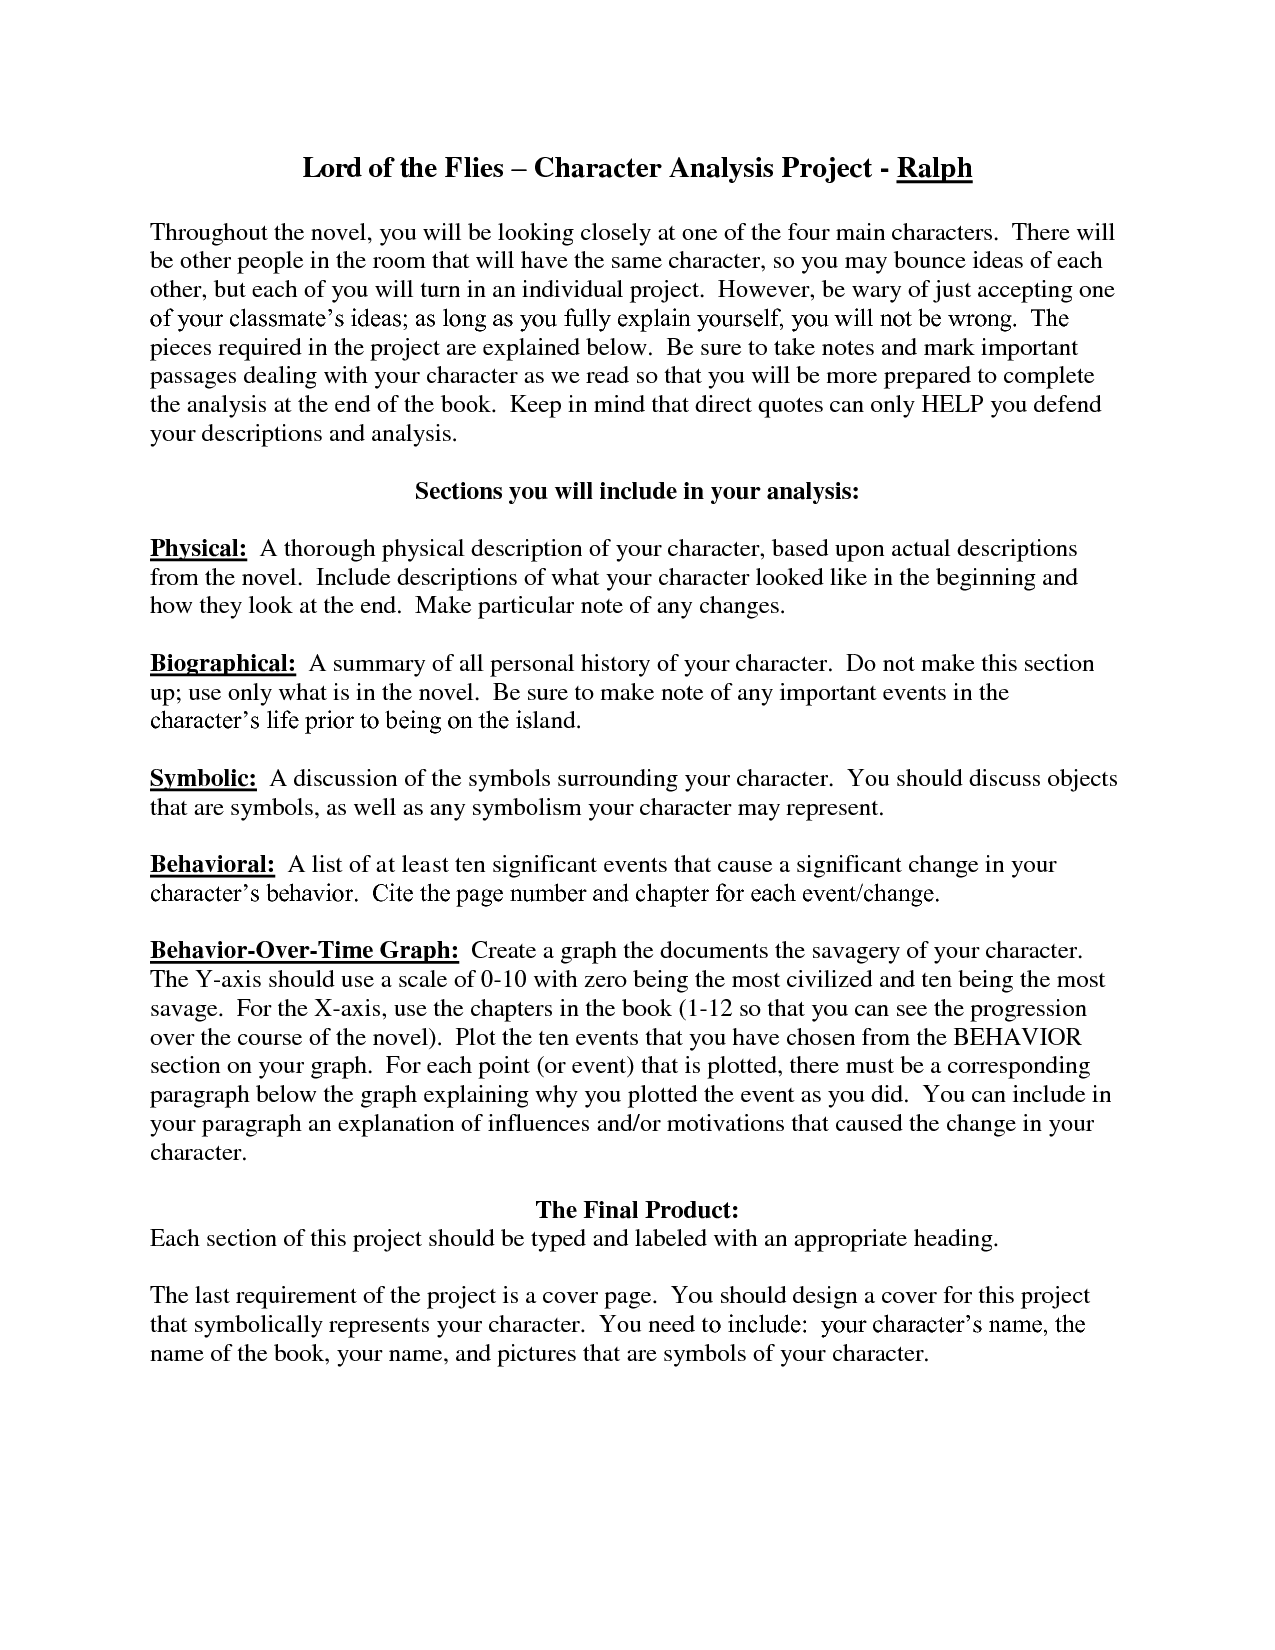 Lord Of The Flies Piggy Quotes With Page Numbers: Lotf Character Quotes. QuotesGram